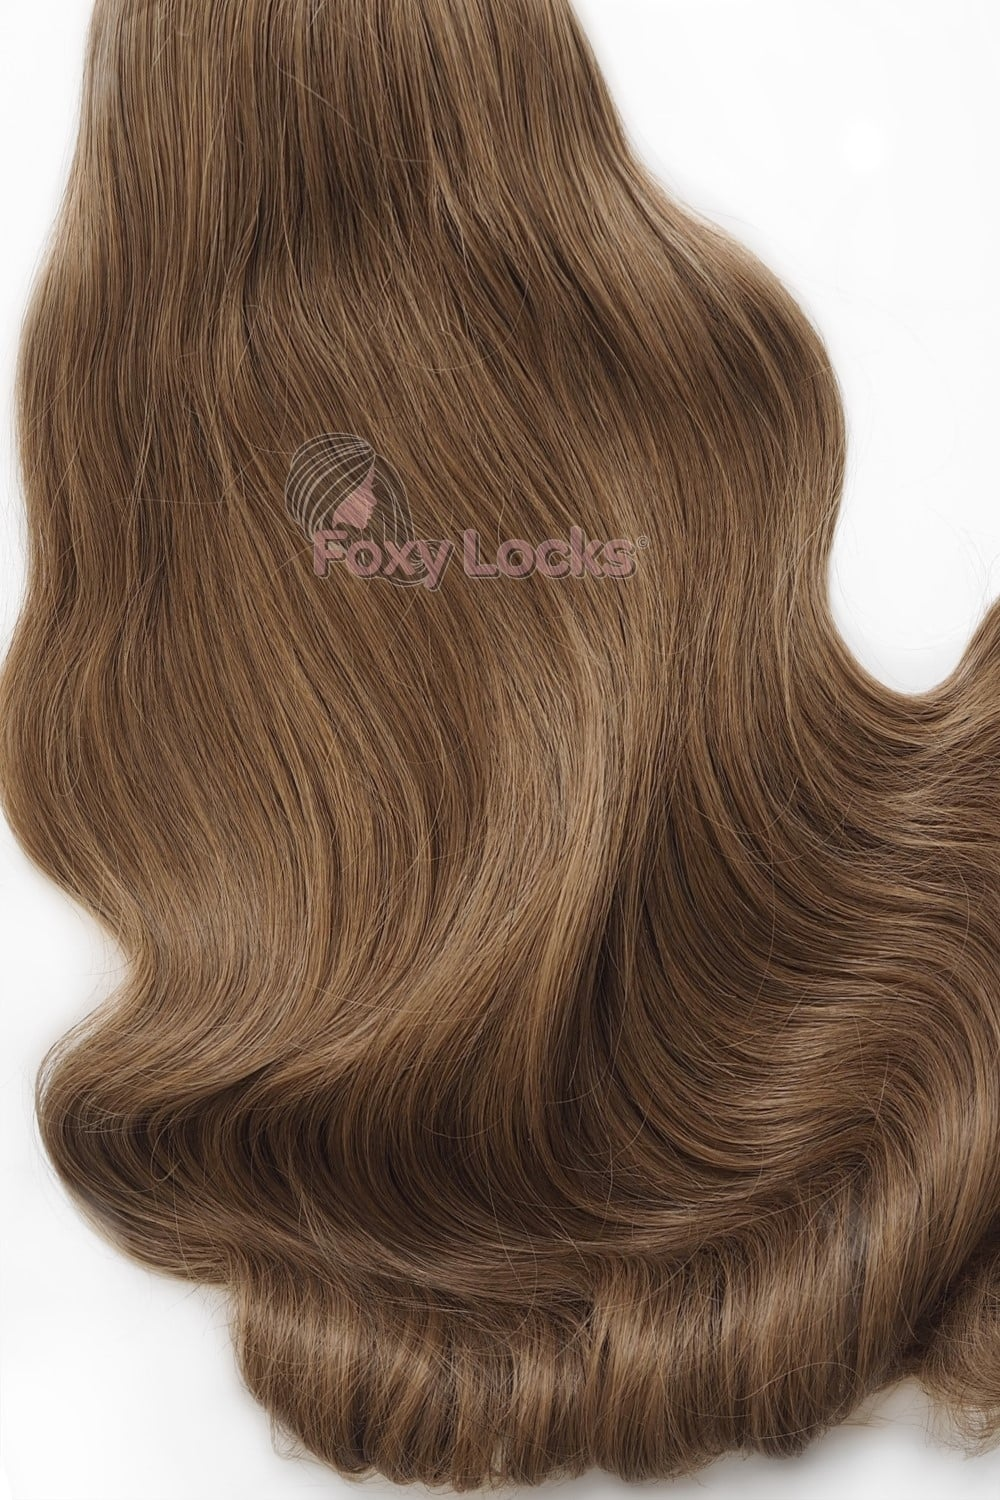 Sunkissed Brown Luxurious Seamless 24 Quot Clip In Human